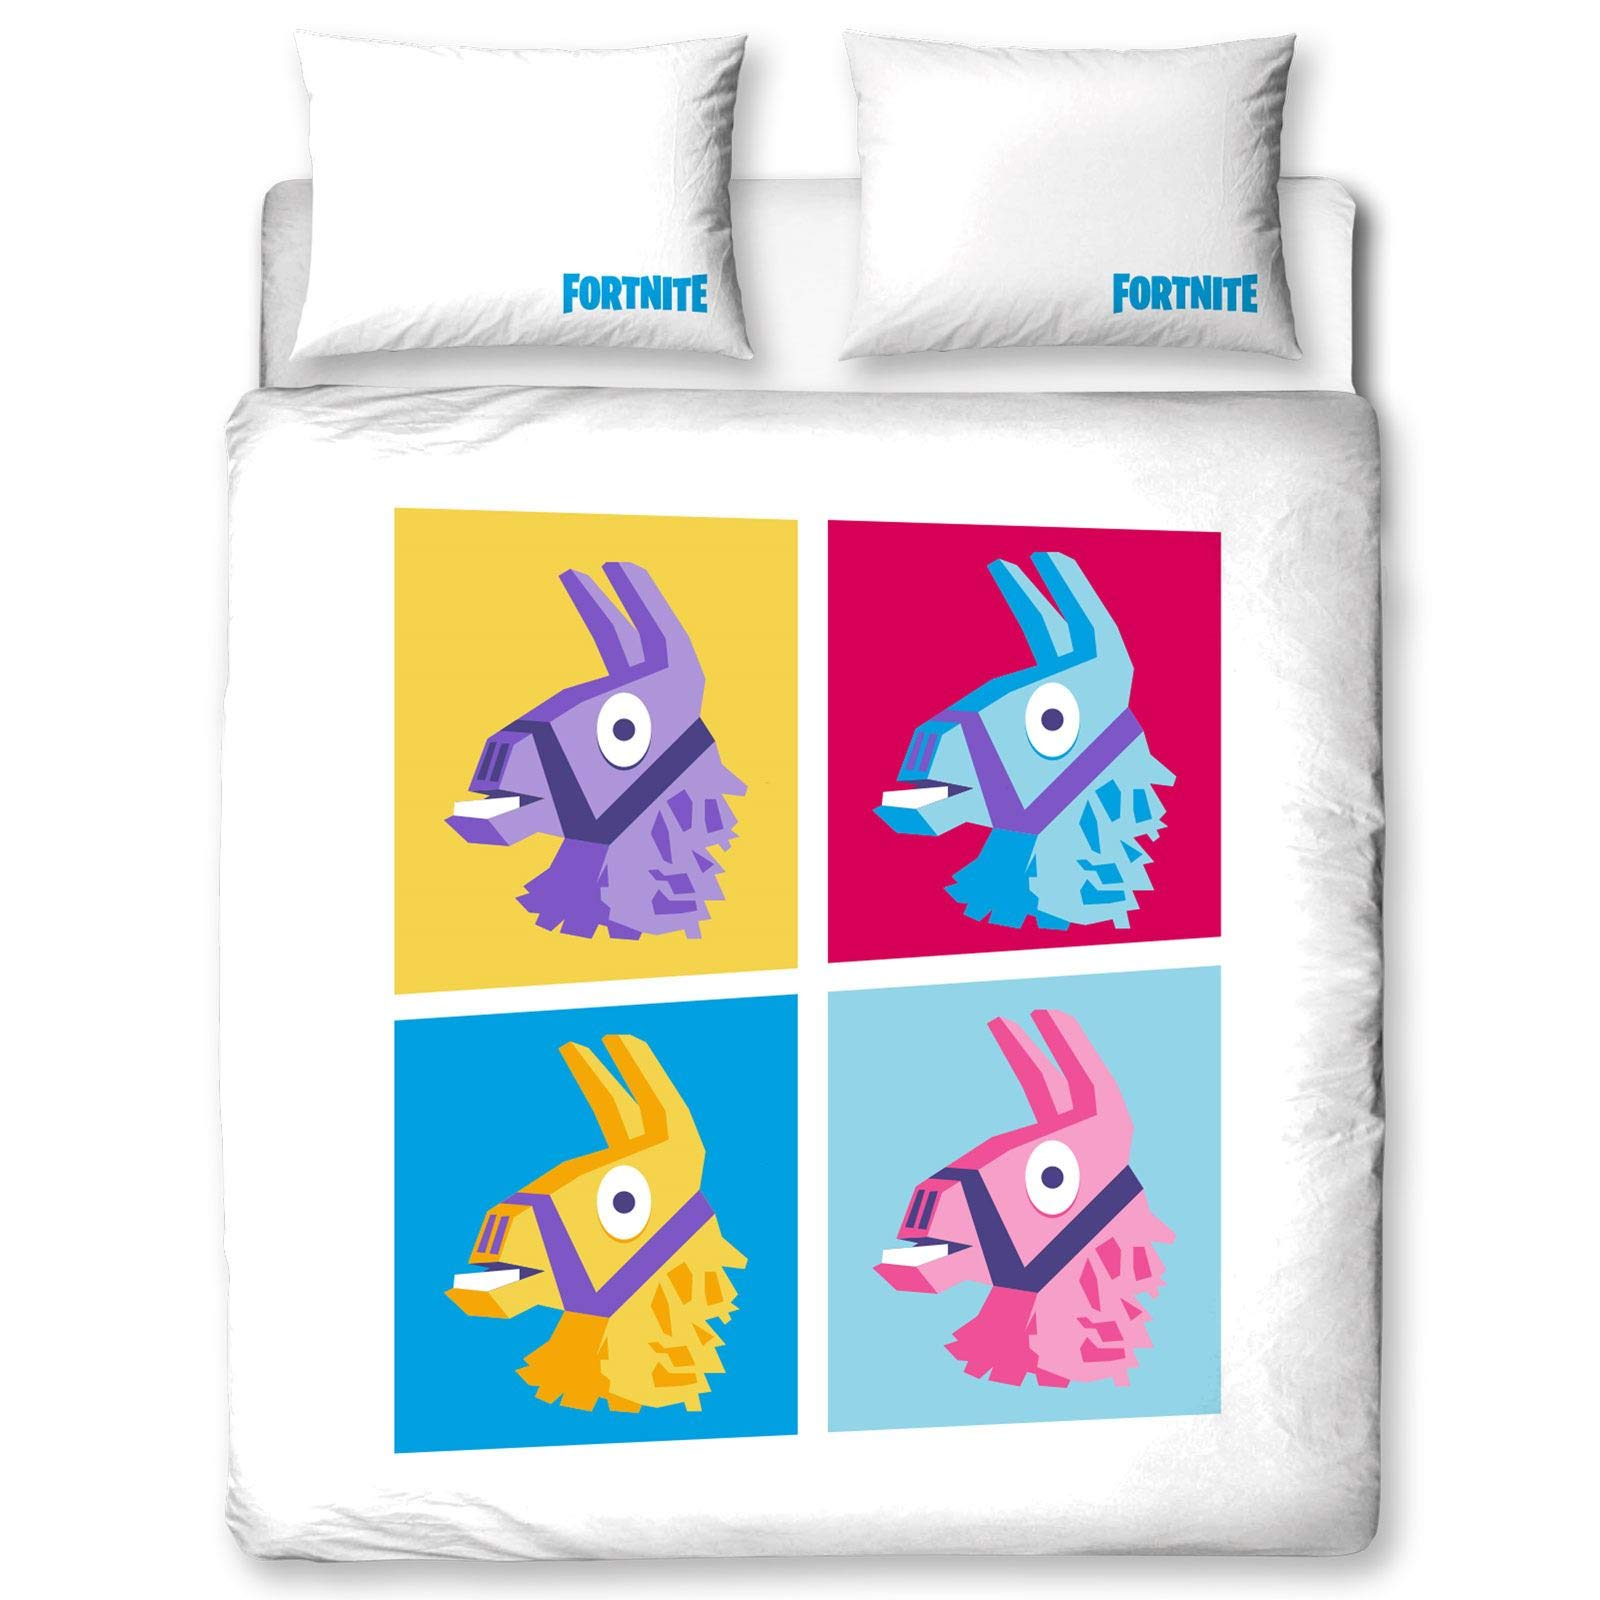 Character World Fortnite Single Llama Design | Reversible Two Sided Battle Royale Bedding Duvet Cover with Matching Pillow Case, Multi Coloured (US Full Duvet)